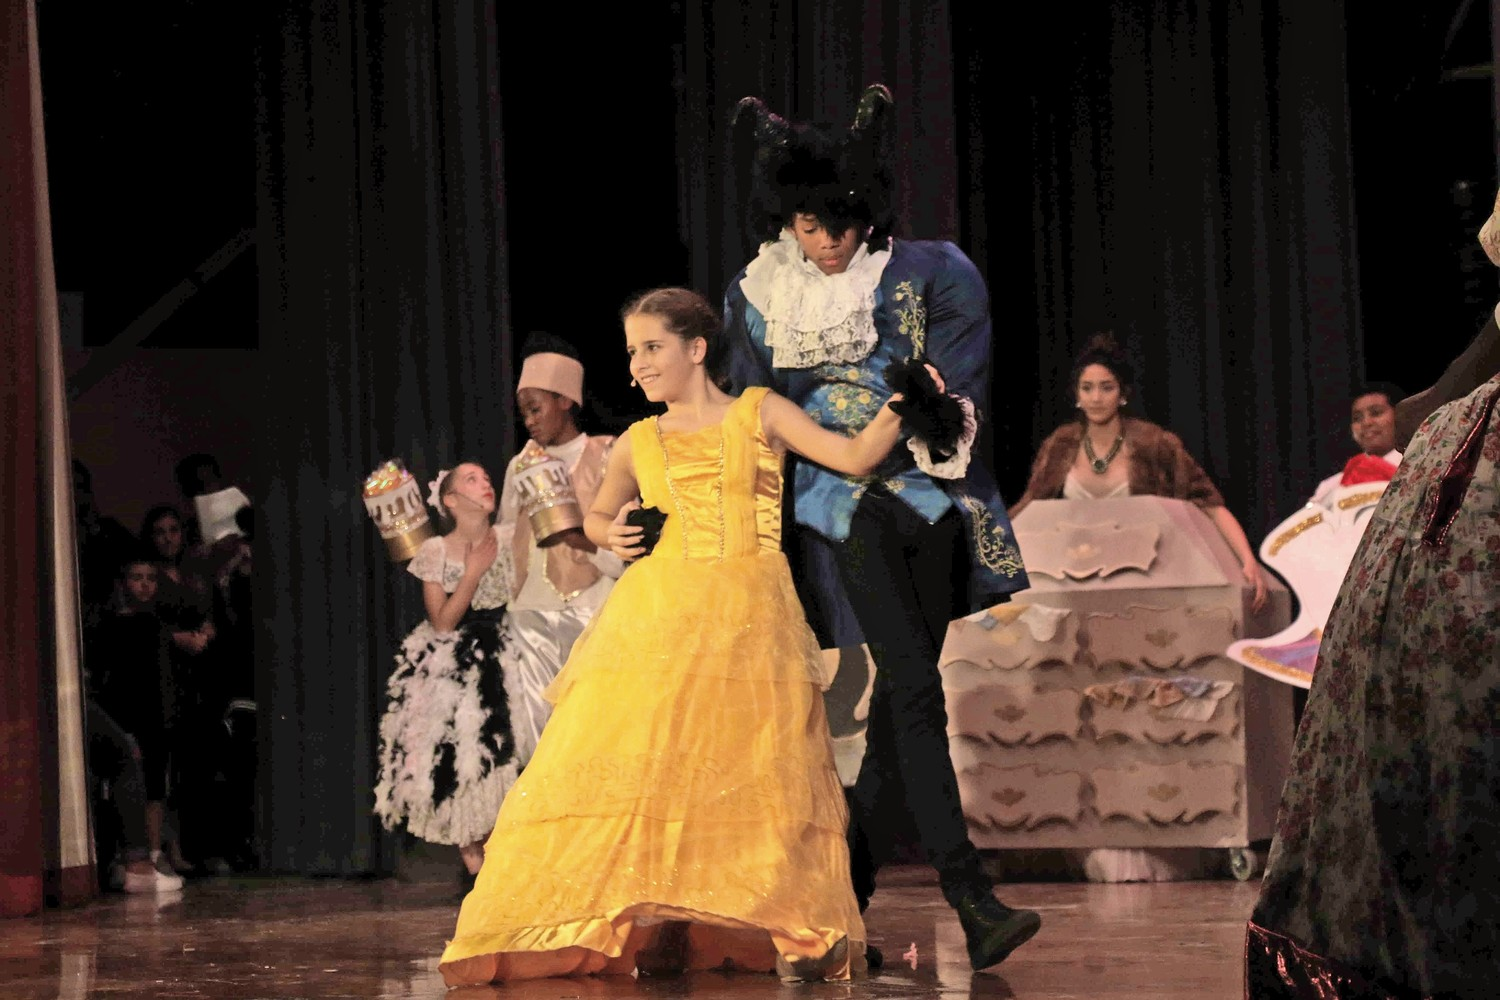 Belle and the Beast shared a dance on stage.